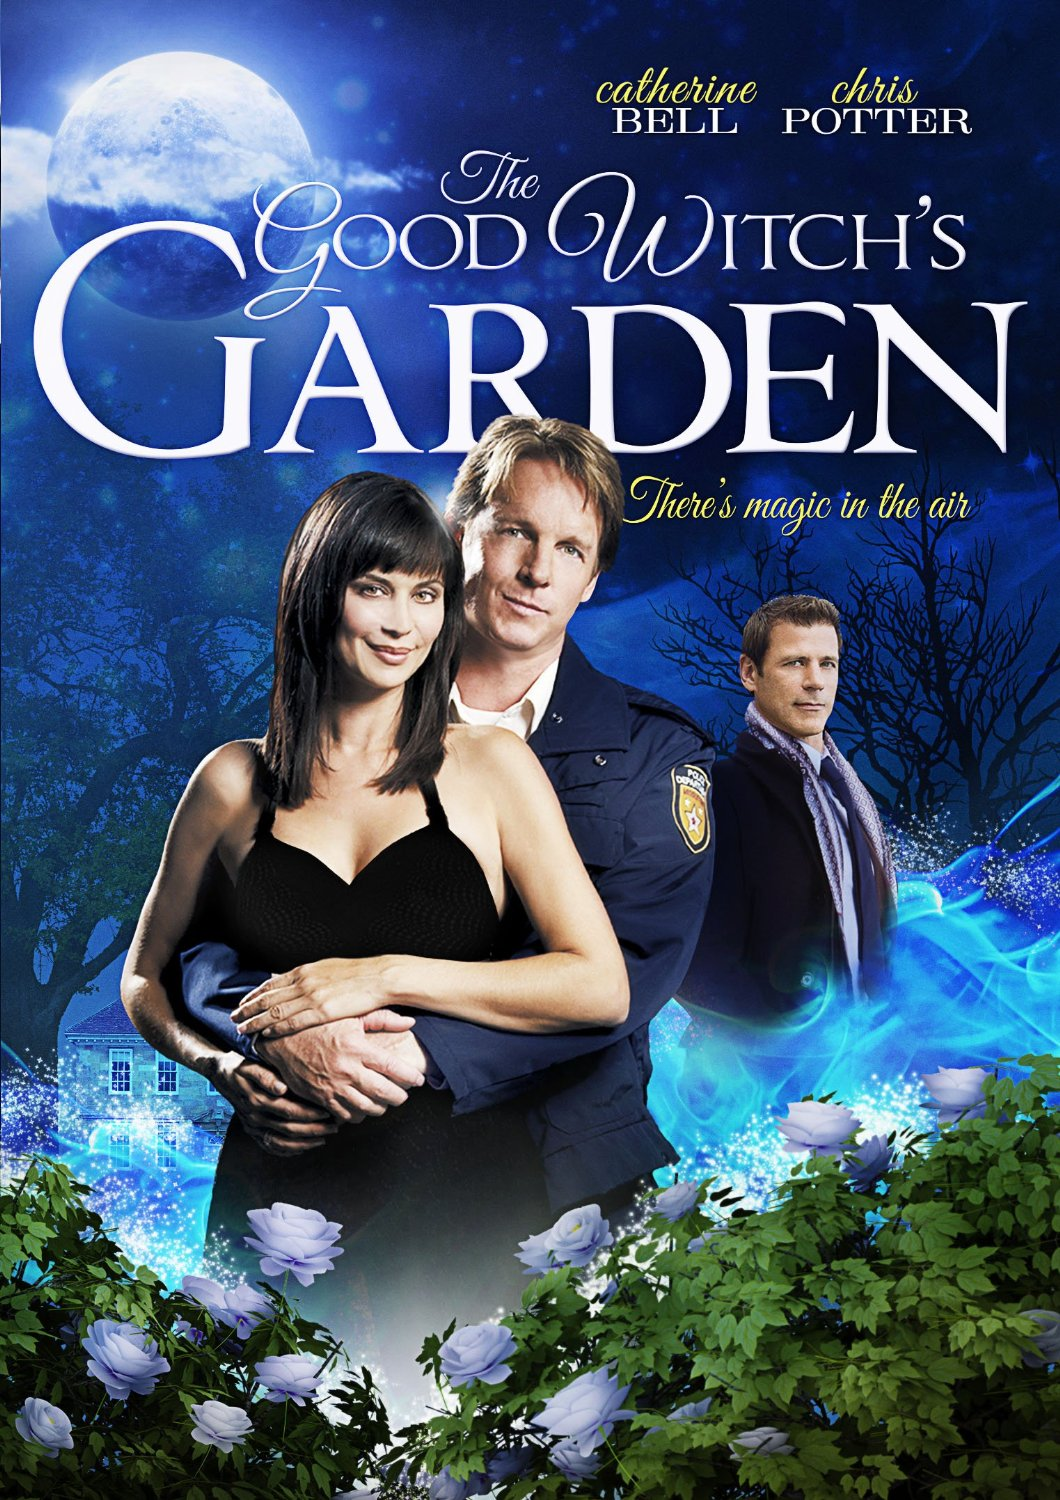 Enter to win the good witch 39 s garden on dvd ended mediamikes for The good witch garden